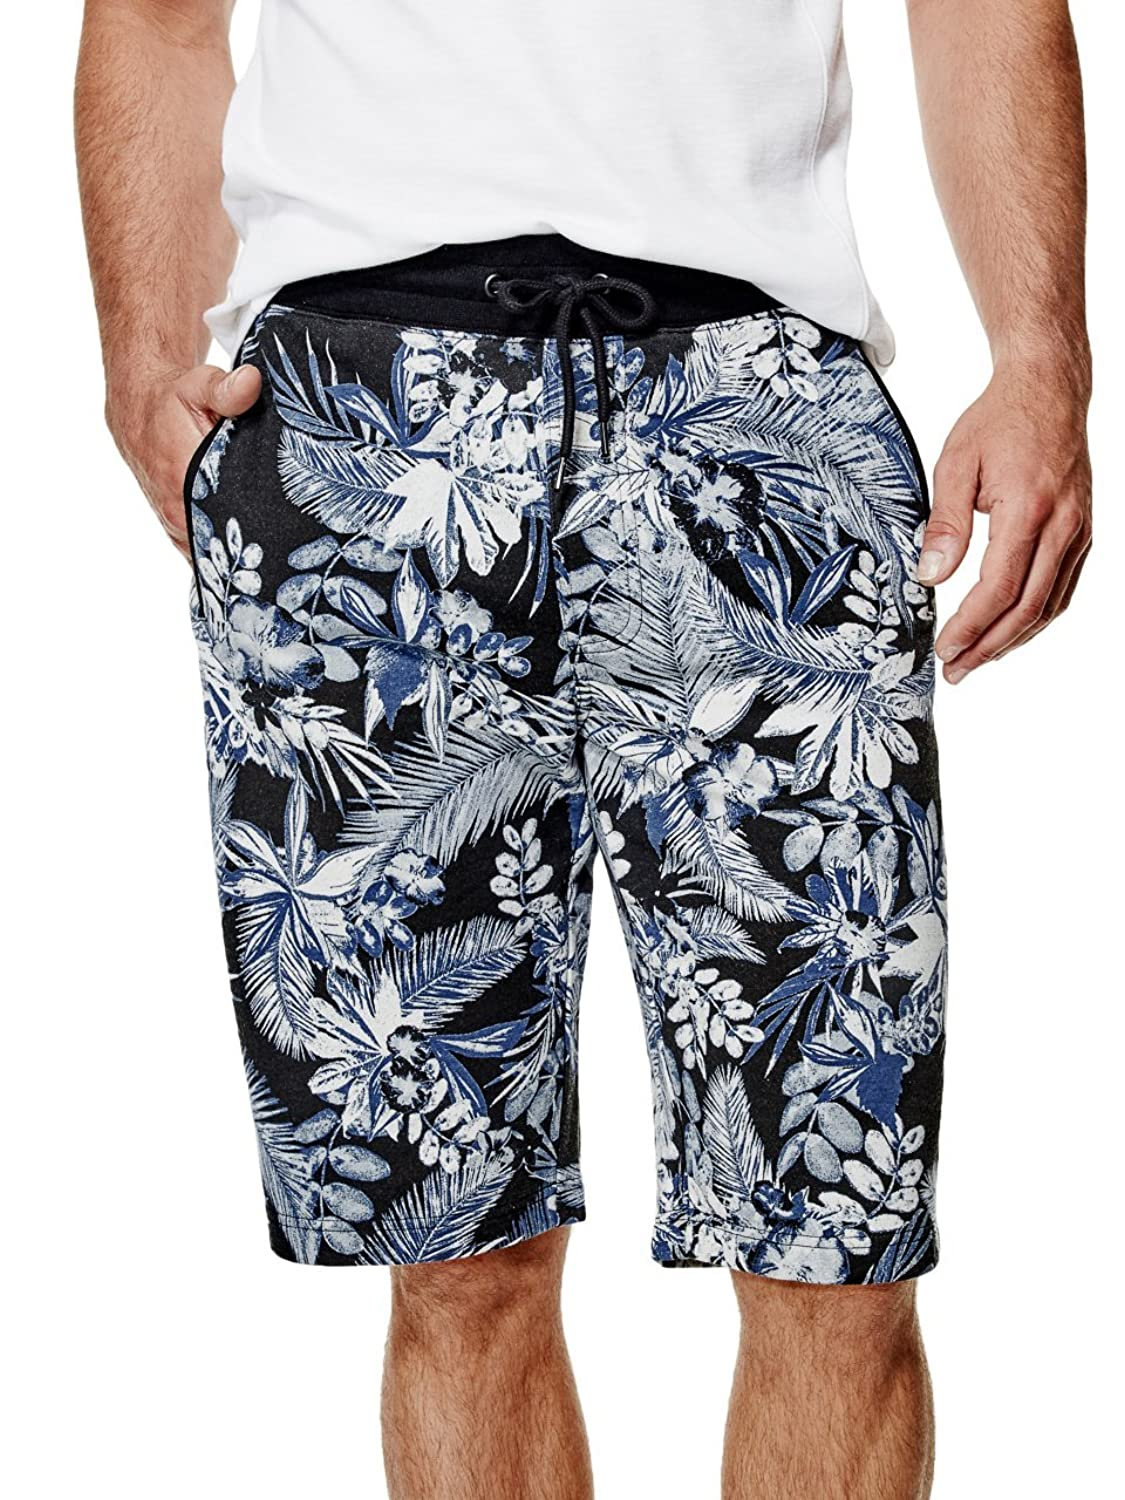 2a59a0c656dc chic G by GUESS Men's Kilth Floral Knit Shorts - stpeters-tollerton ...